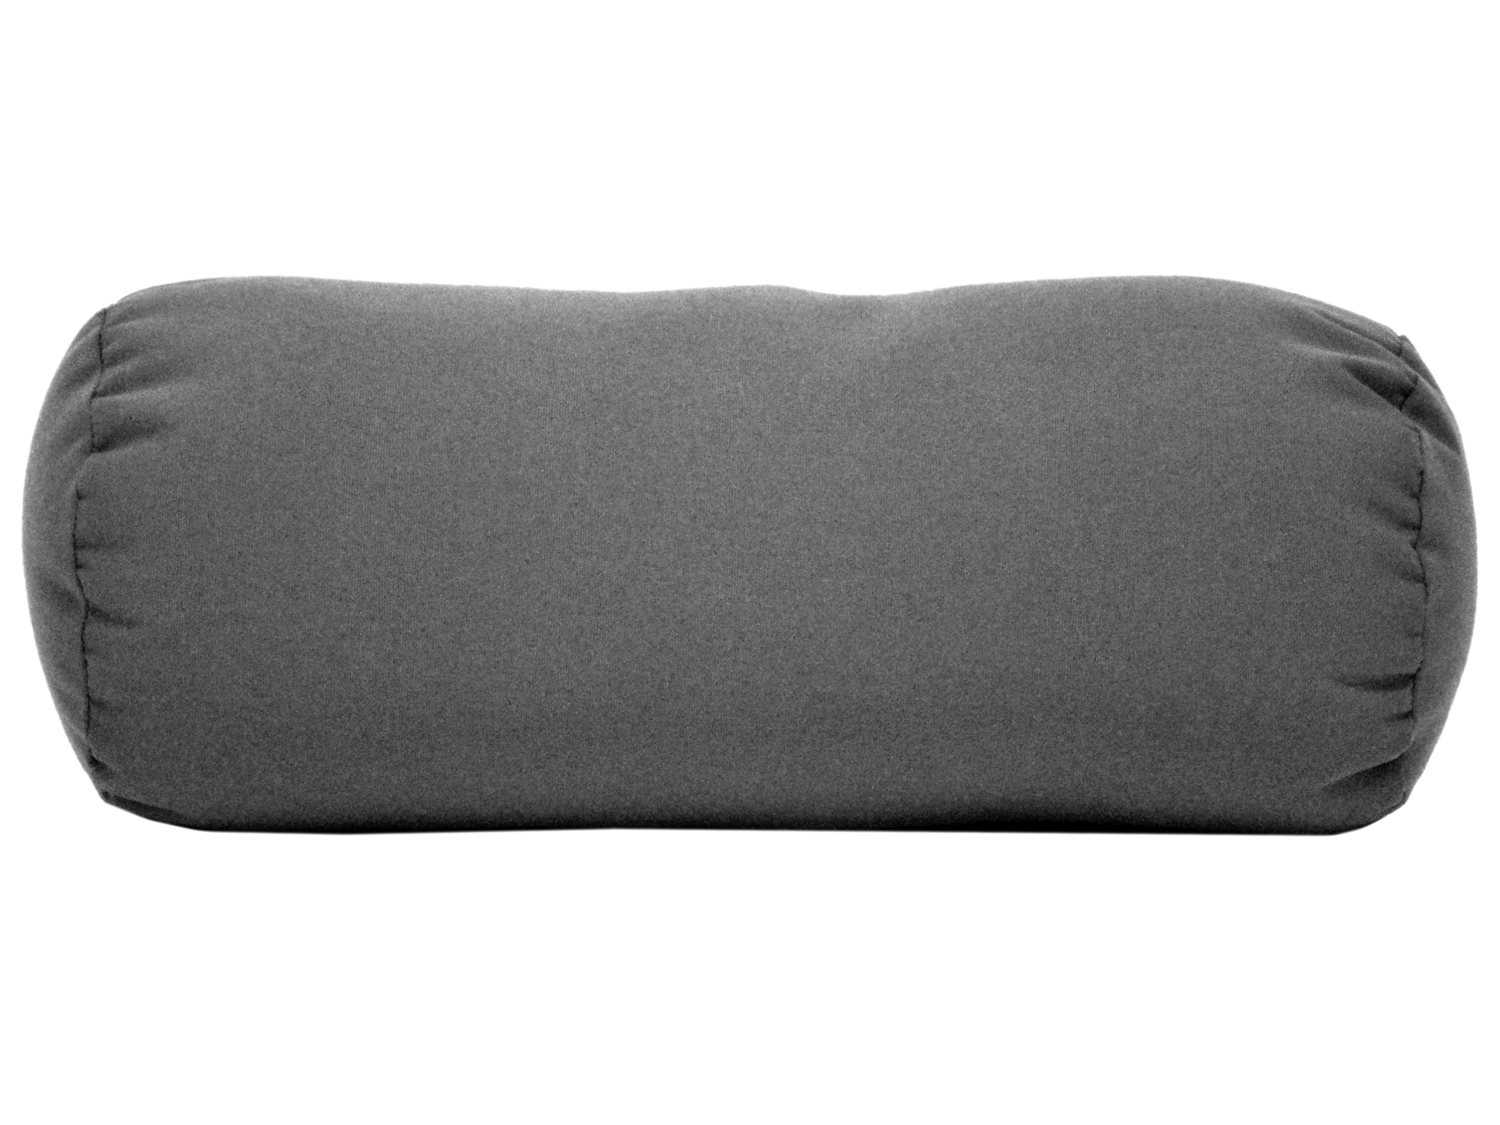 Meadowcraft Cylindrical Pillow With No Welt  b0eb99d29